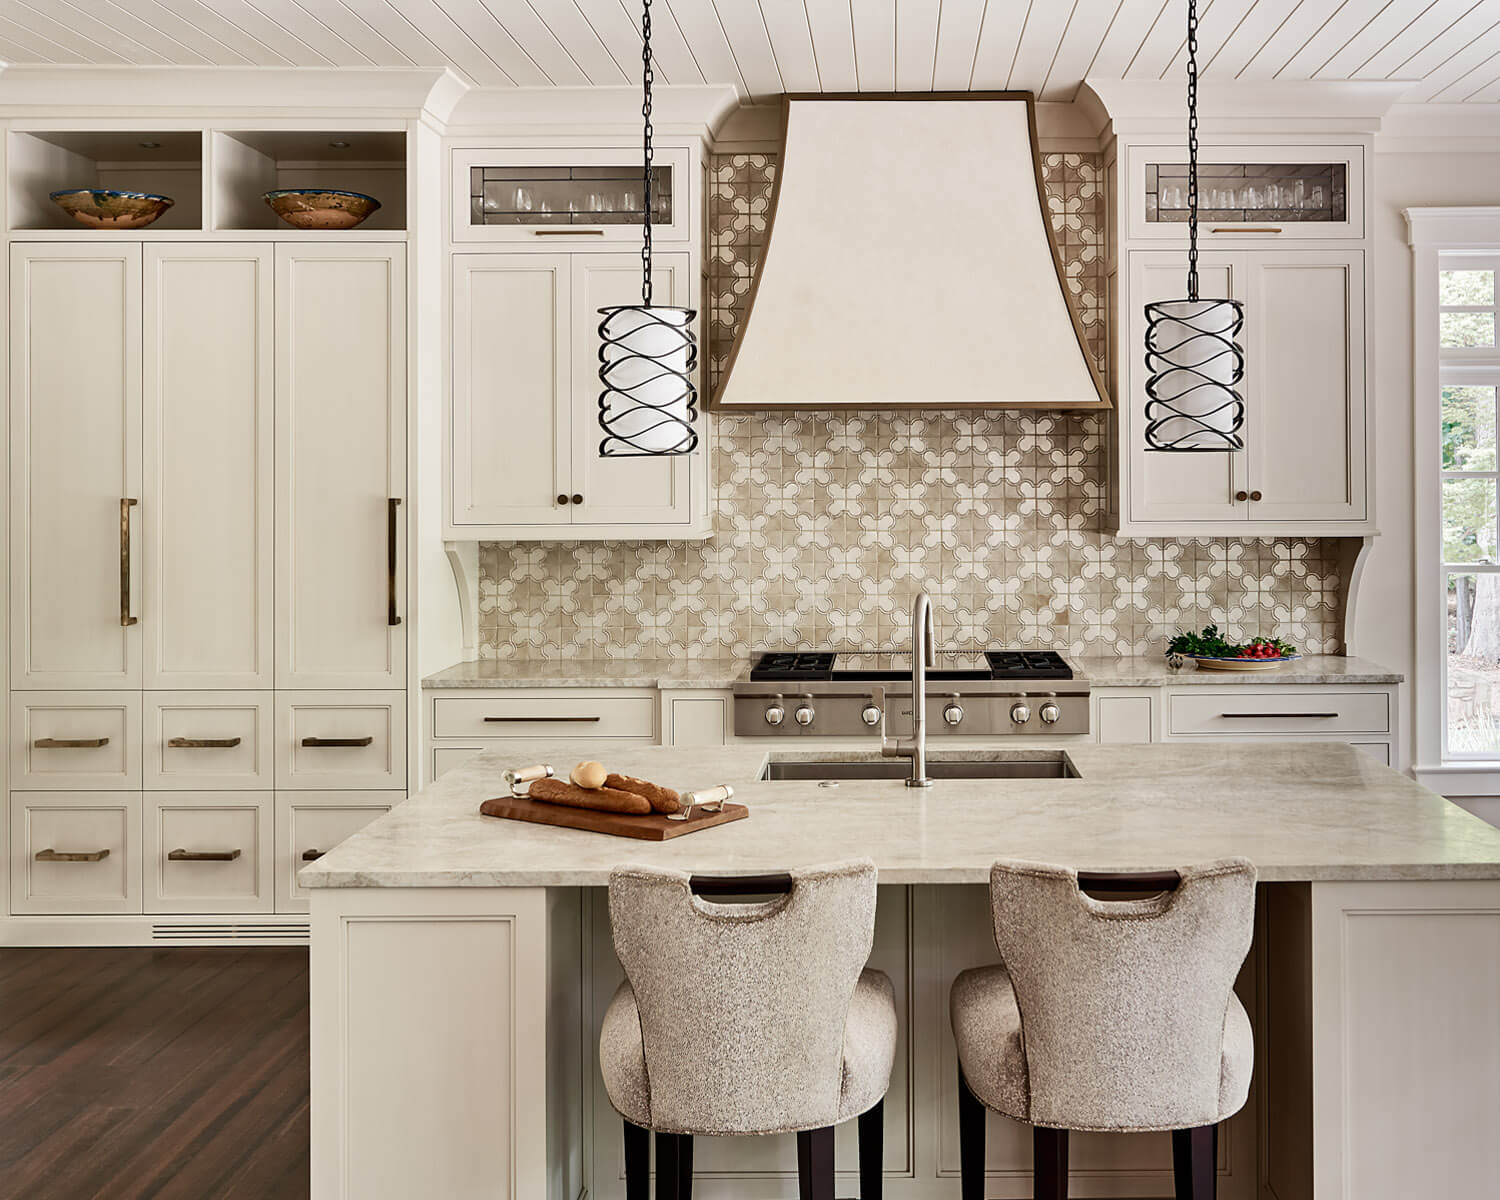 Inviting Kitchen Design With Custom Cabinets By Bistany Design